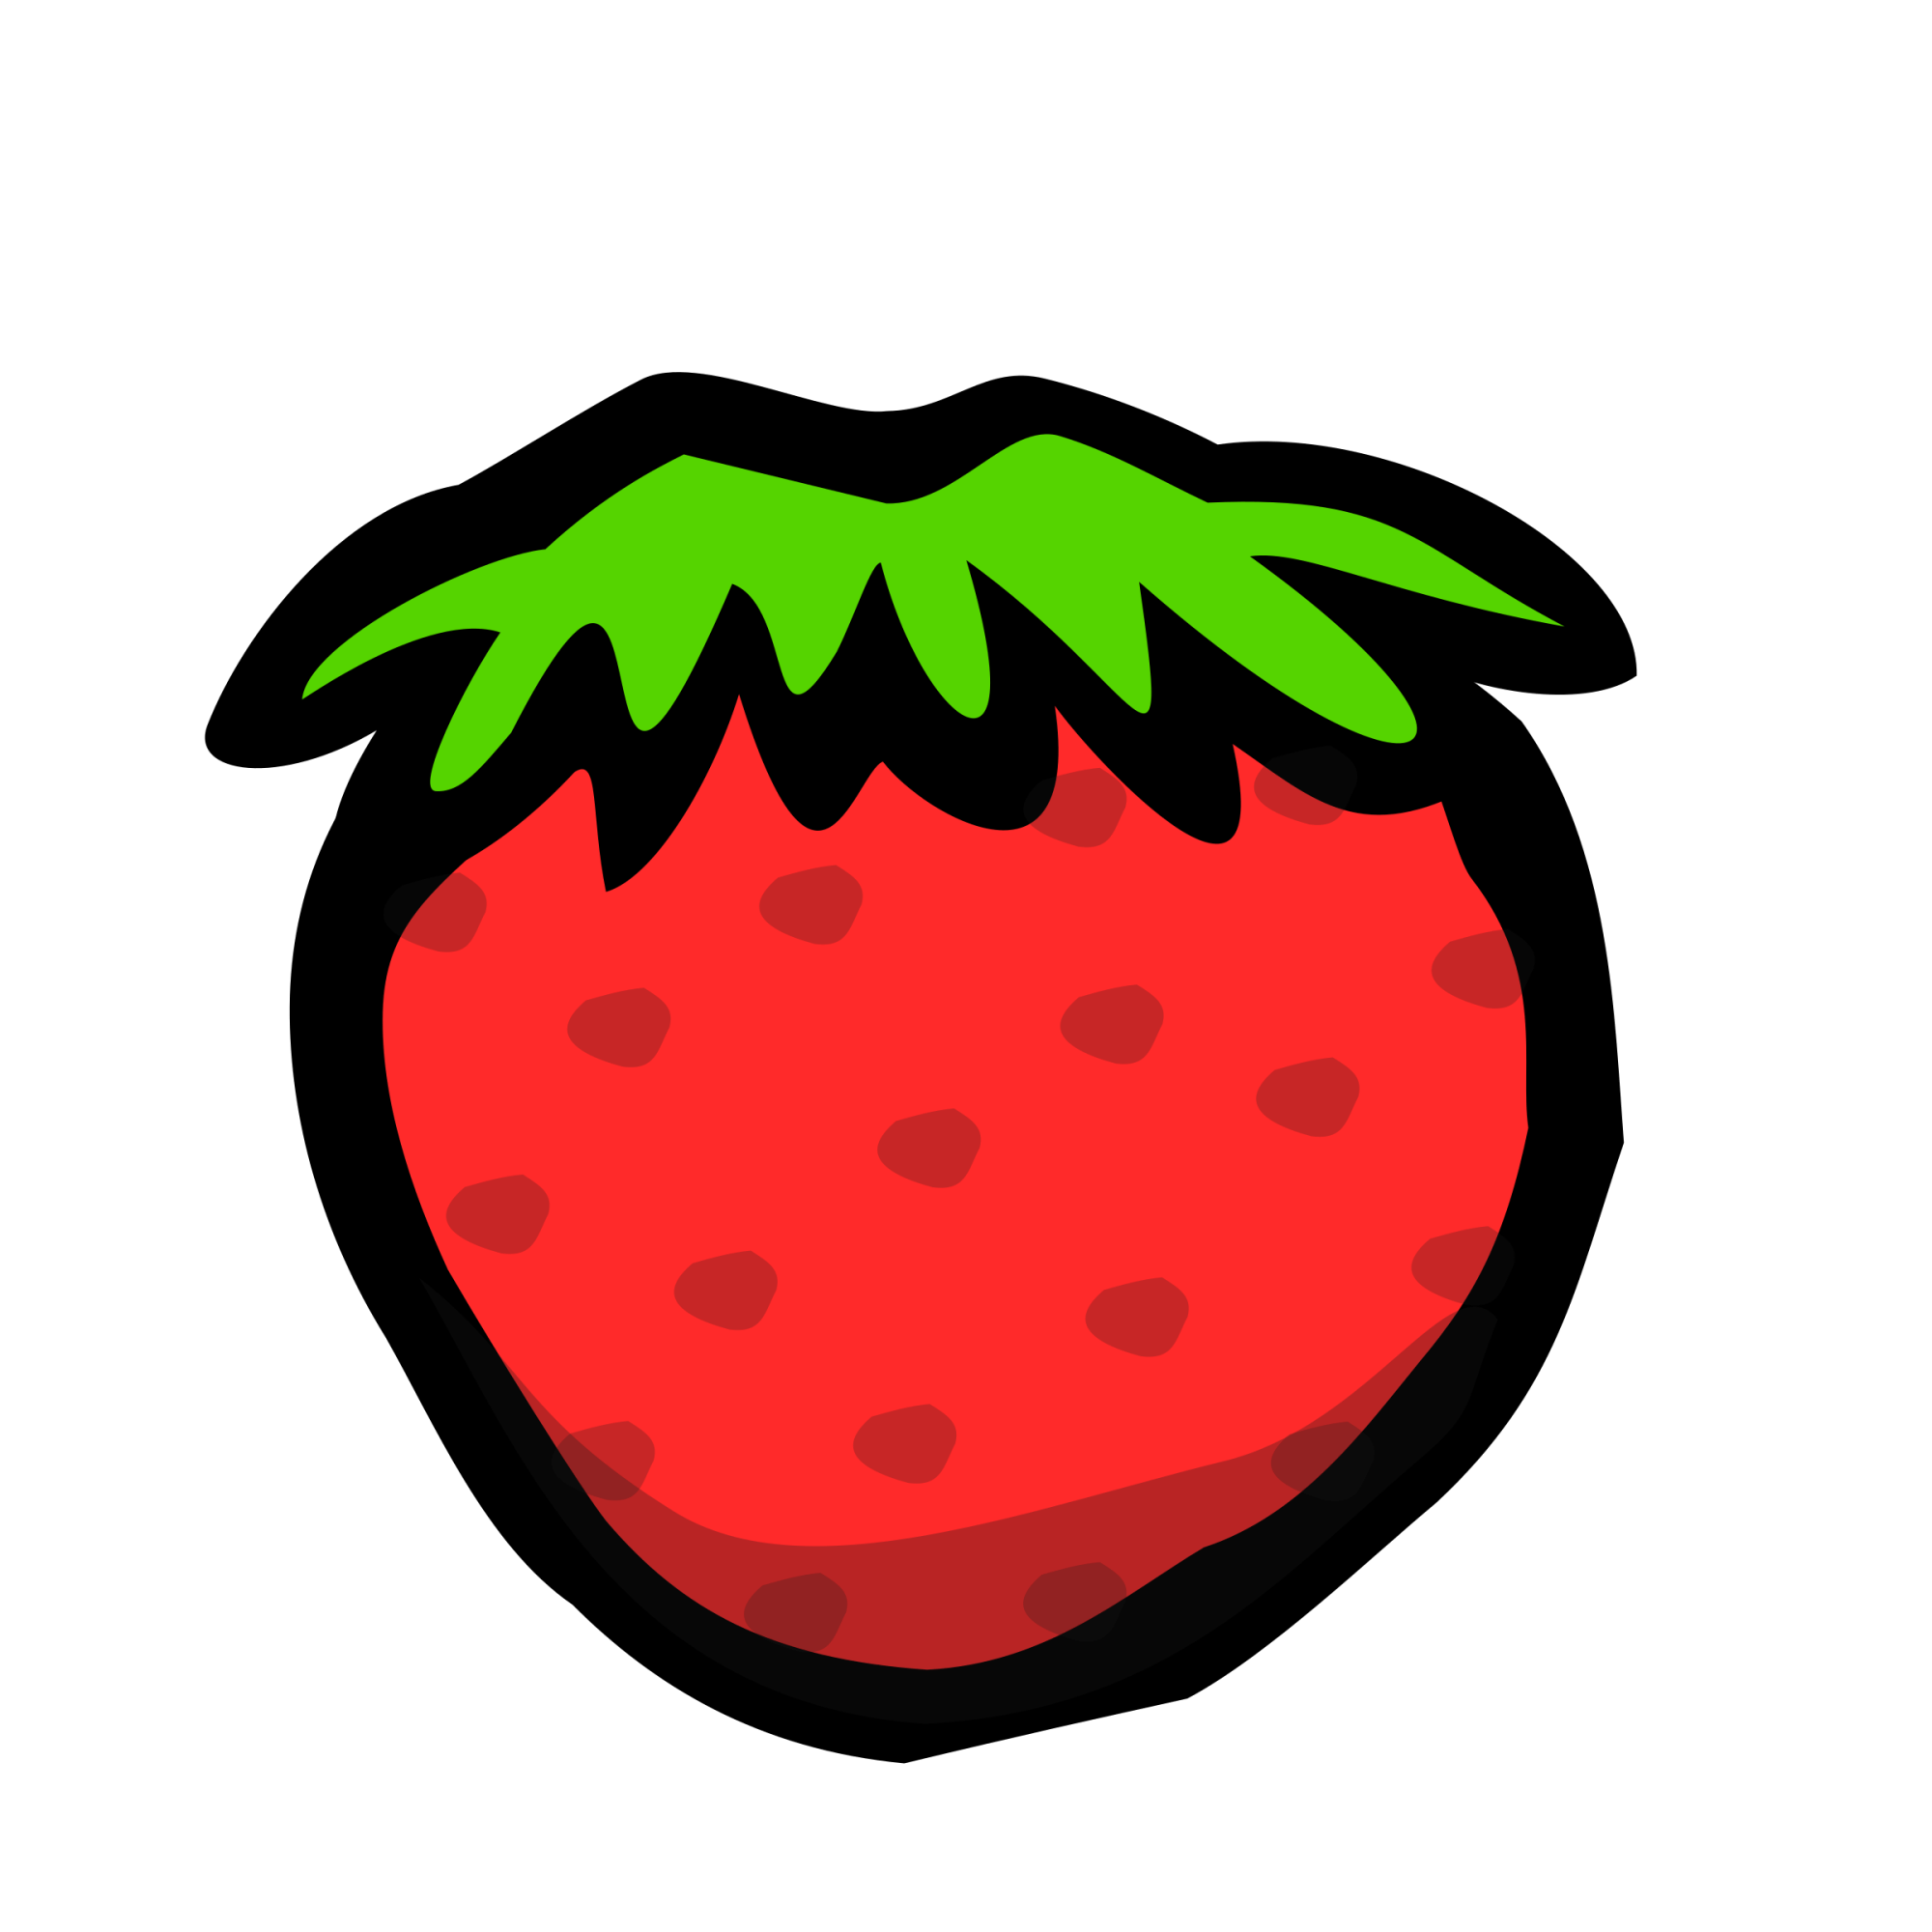 hight resolution of strawberries clipart watermelon strawberry big image png